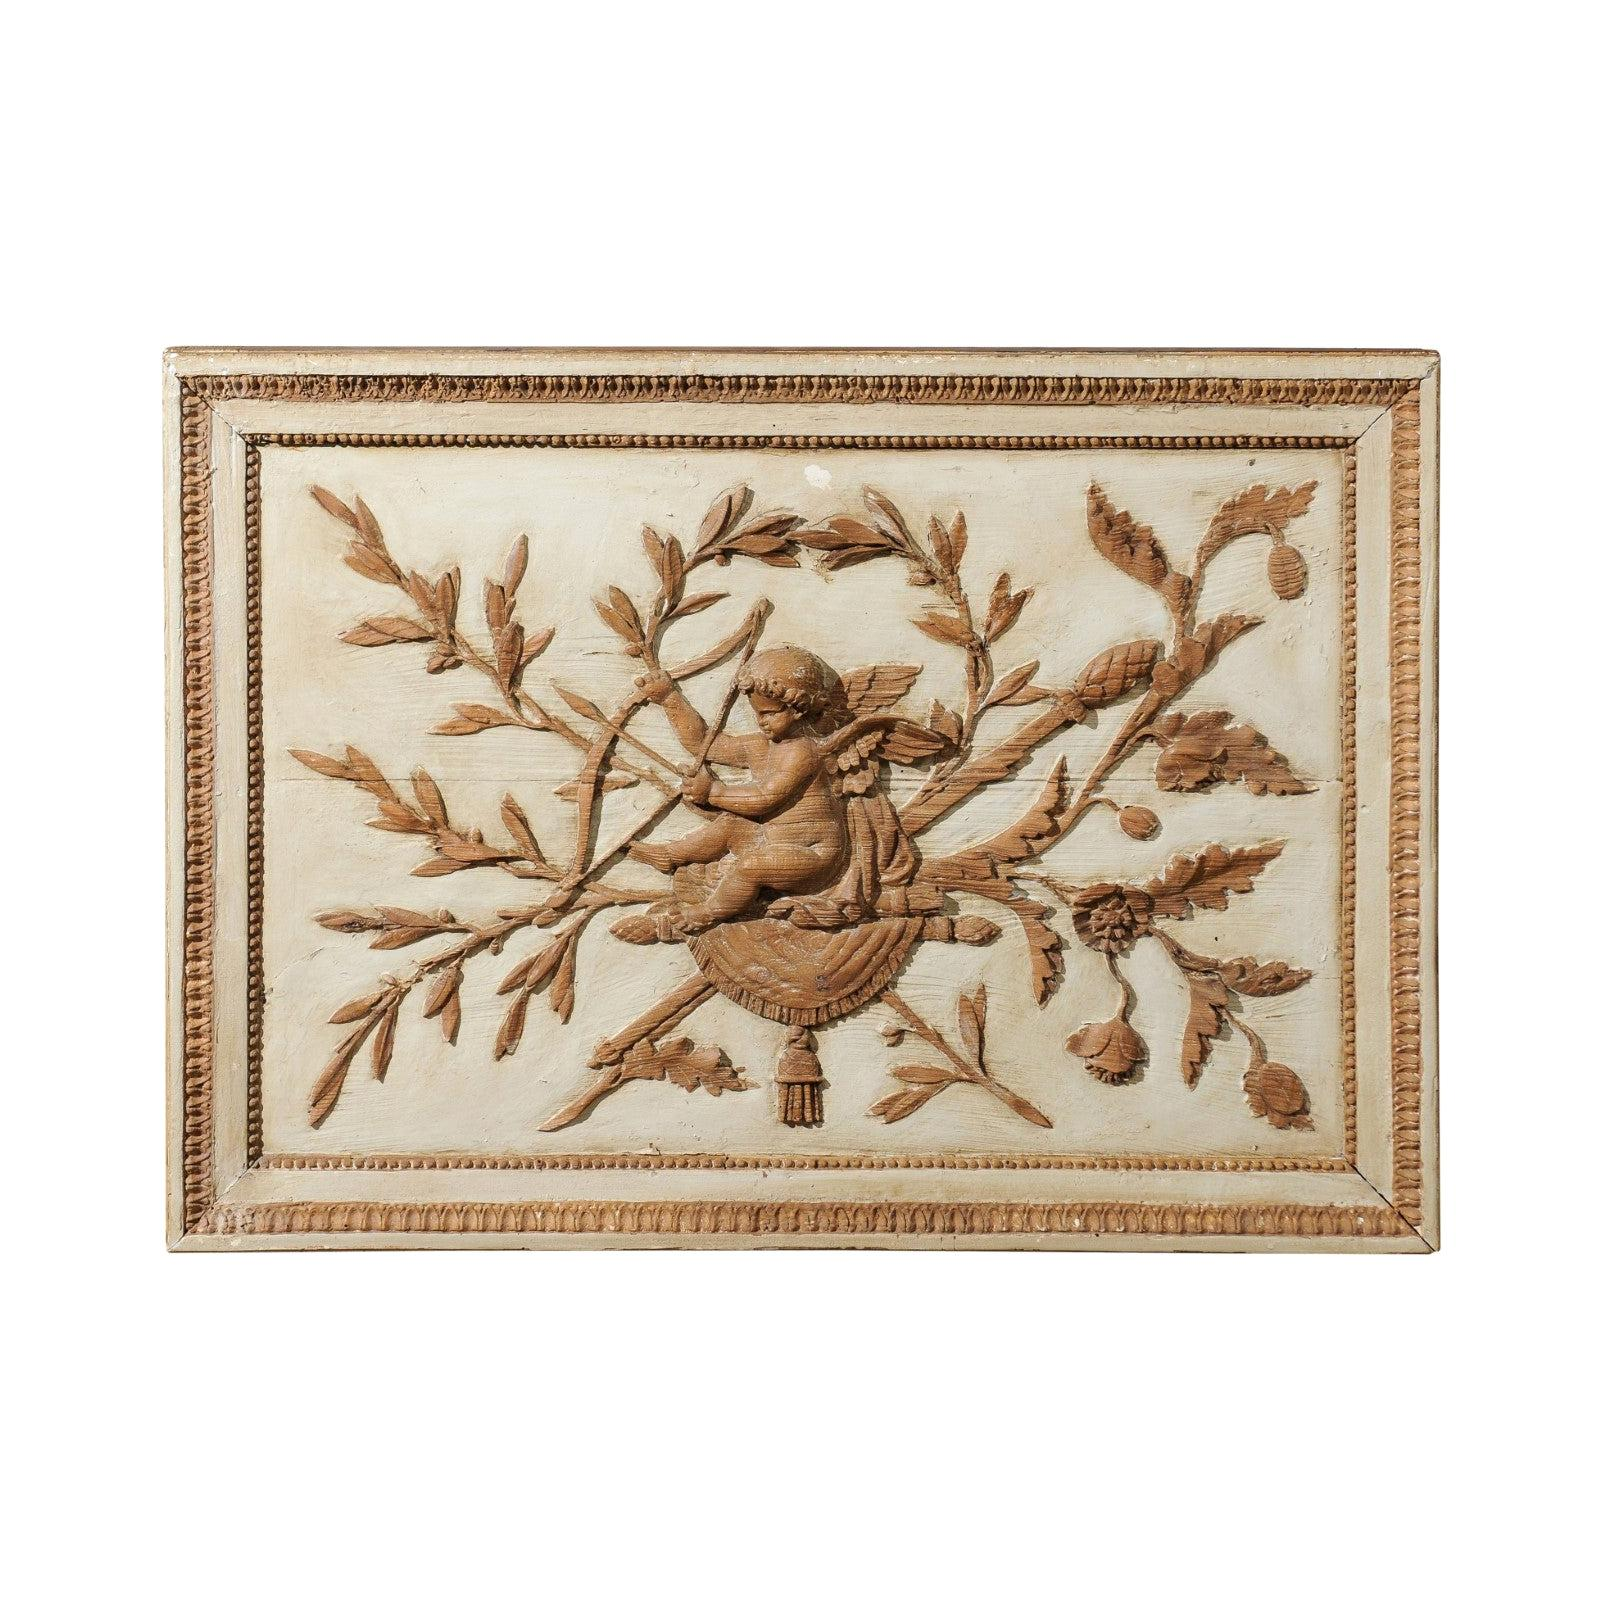 French 18th Century Louis XVI Period Wooden Panel with Carved Cherub and Foliage